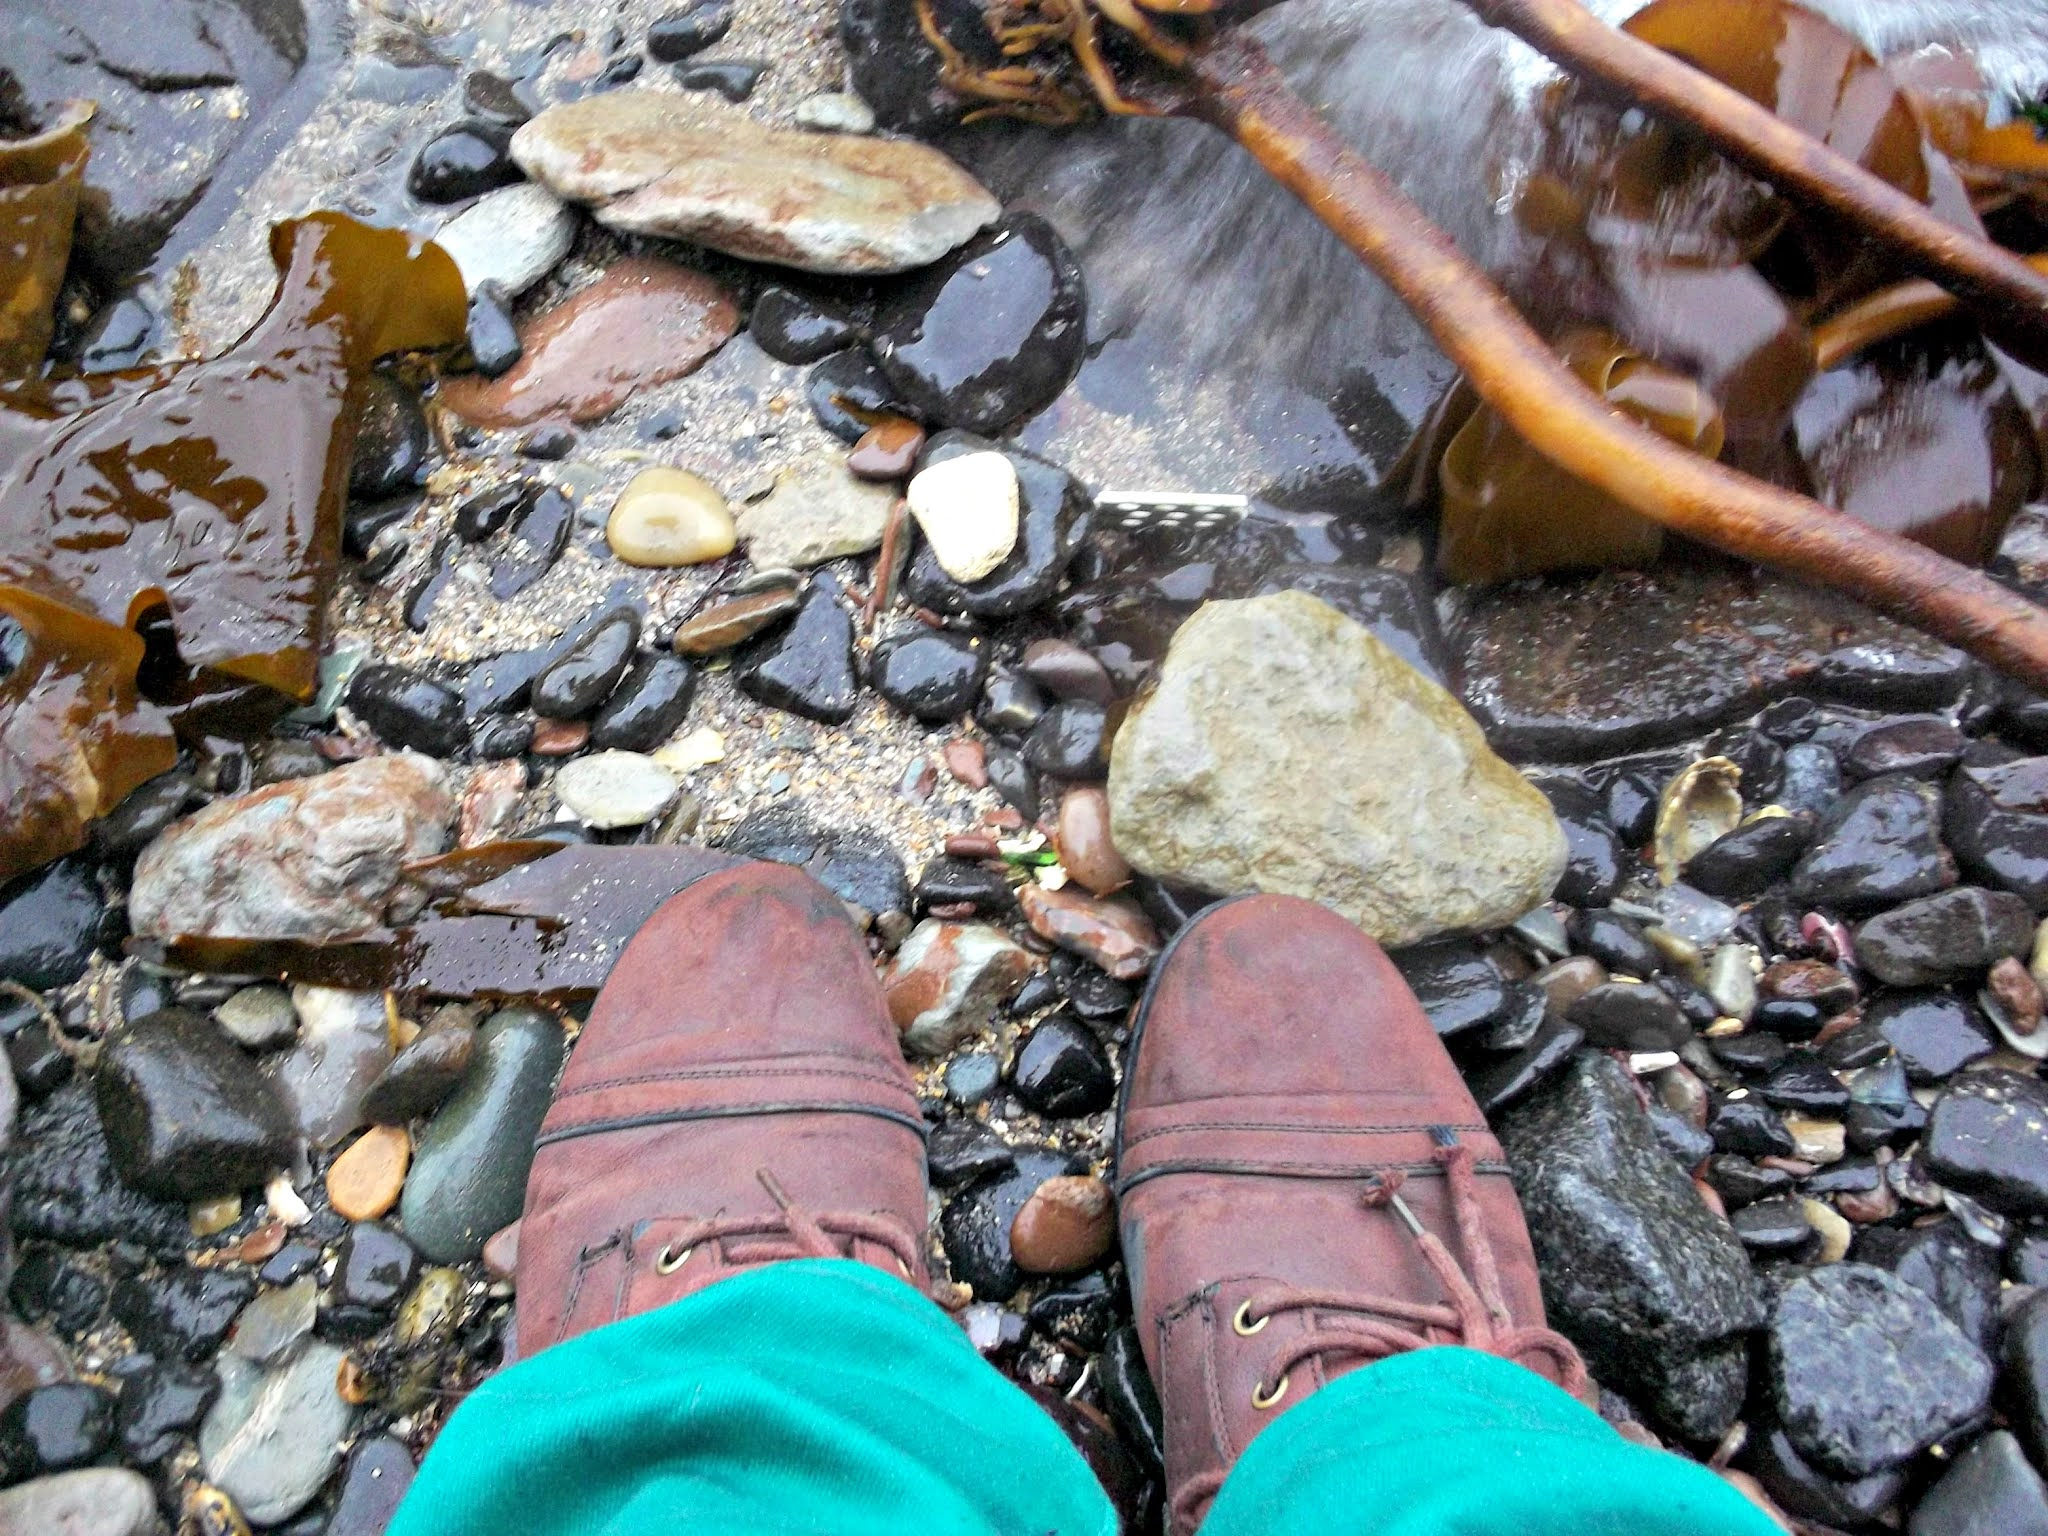 a pebble beach with brown boots and green jeans poking out on bottom edge of frame